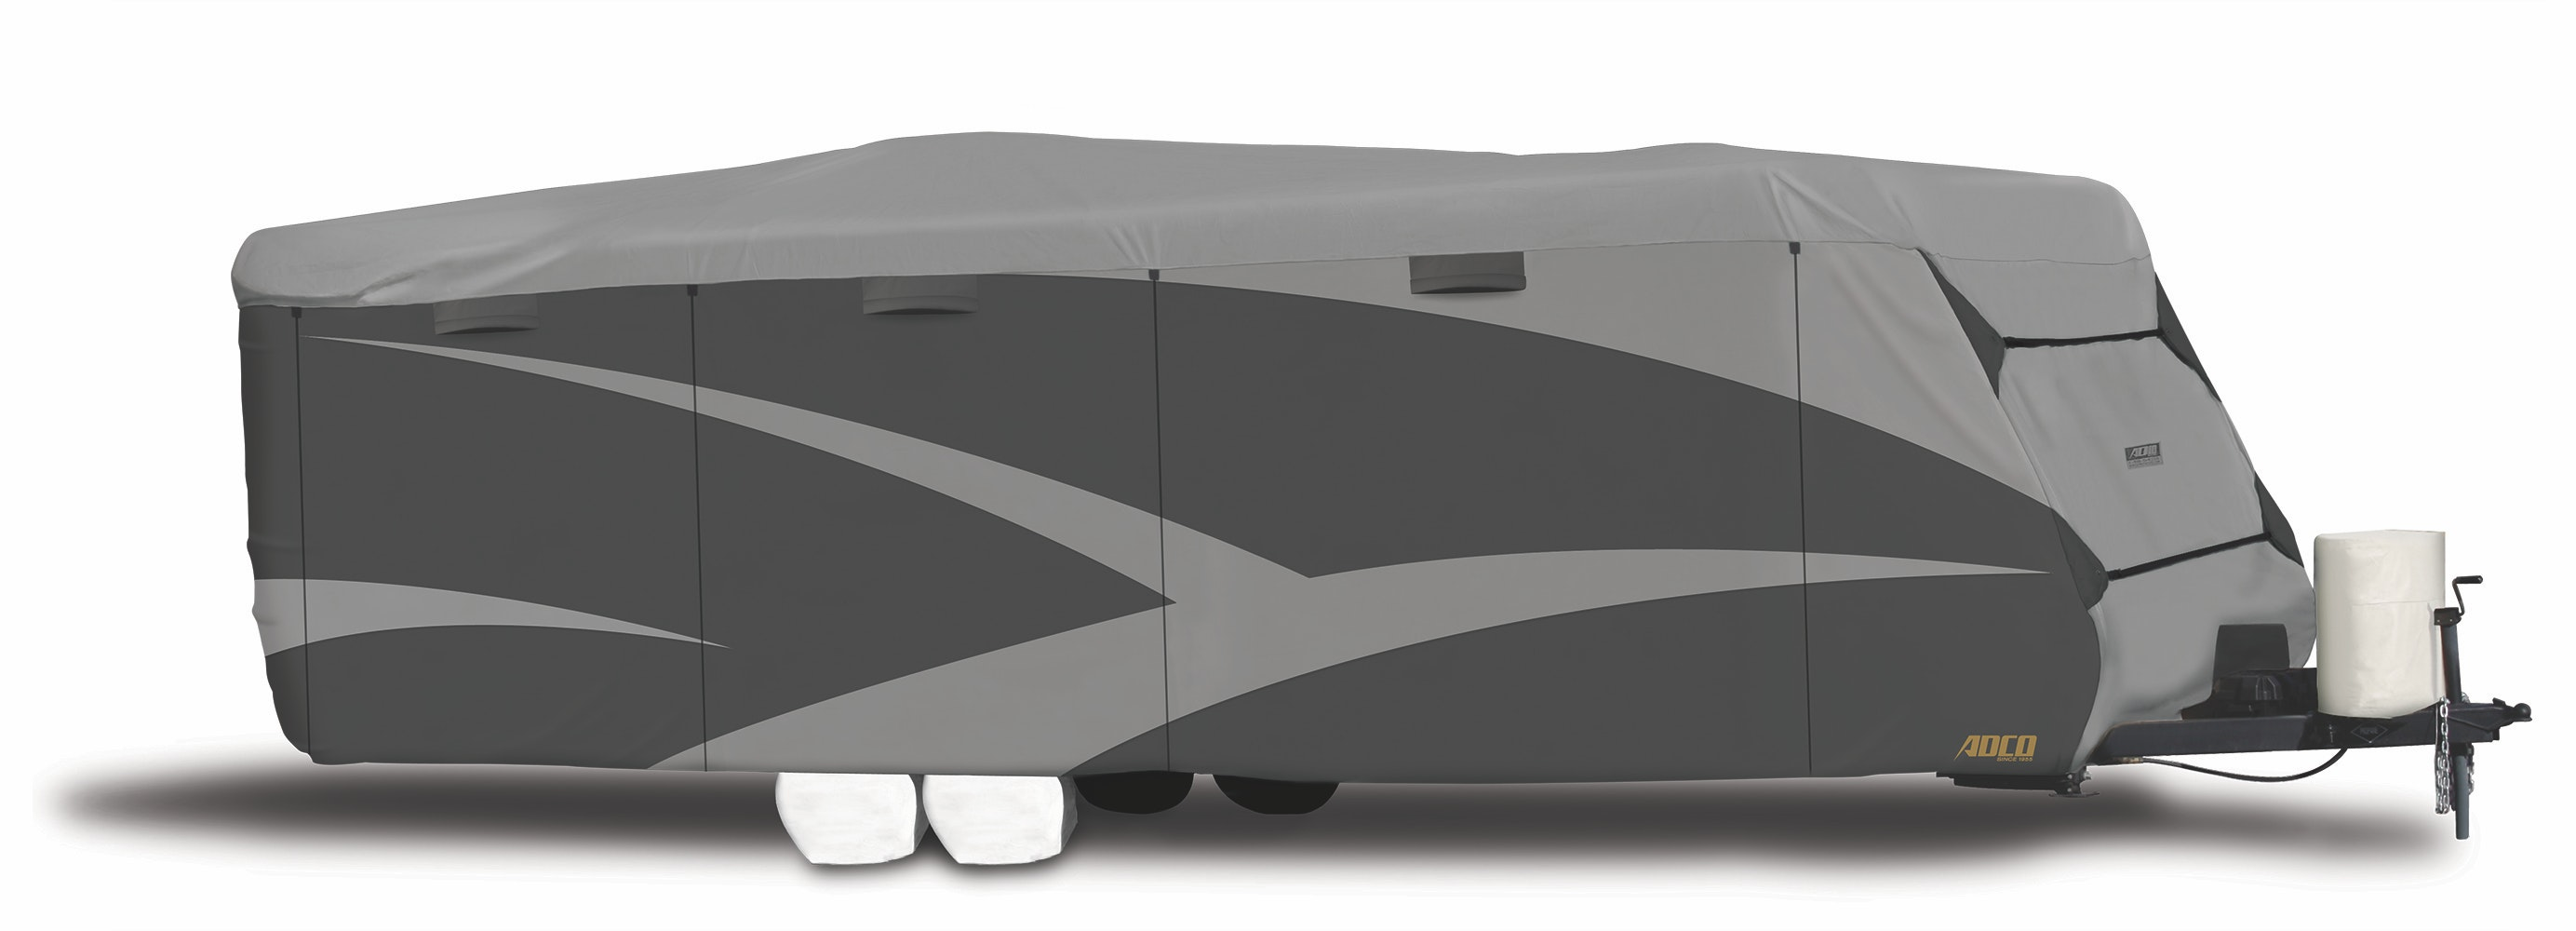 Product Image for ADCO ADCO SFS AquaShed Up to 20' Toy Hauler RV Cover Rv